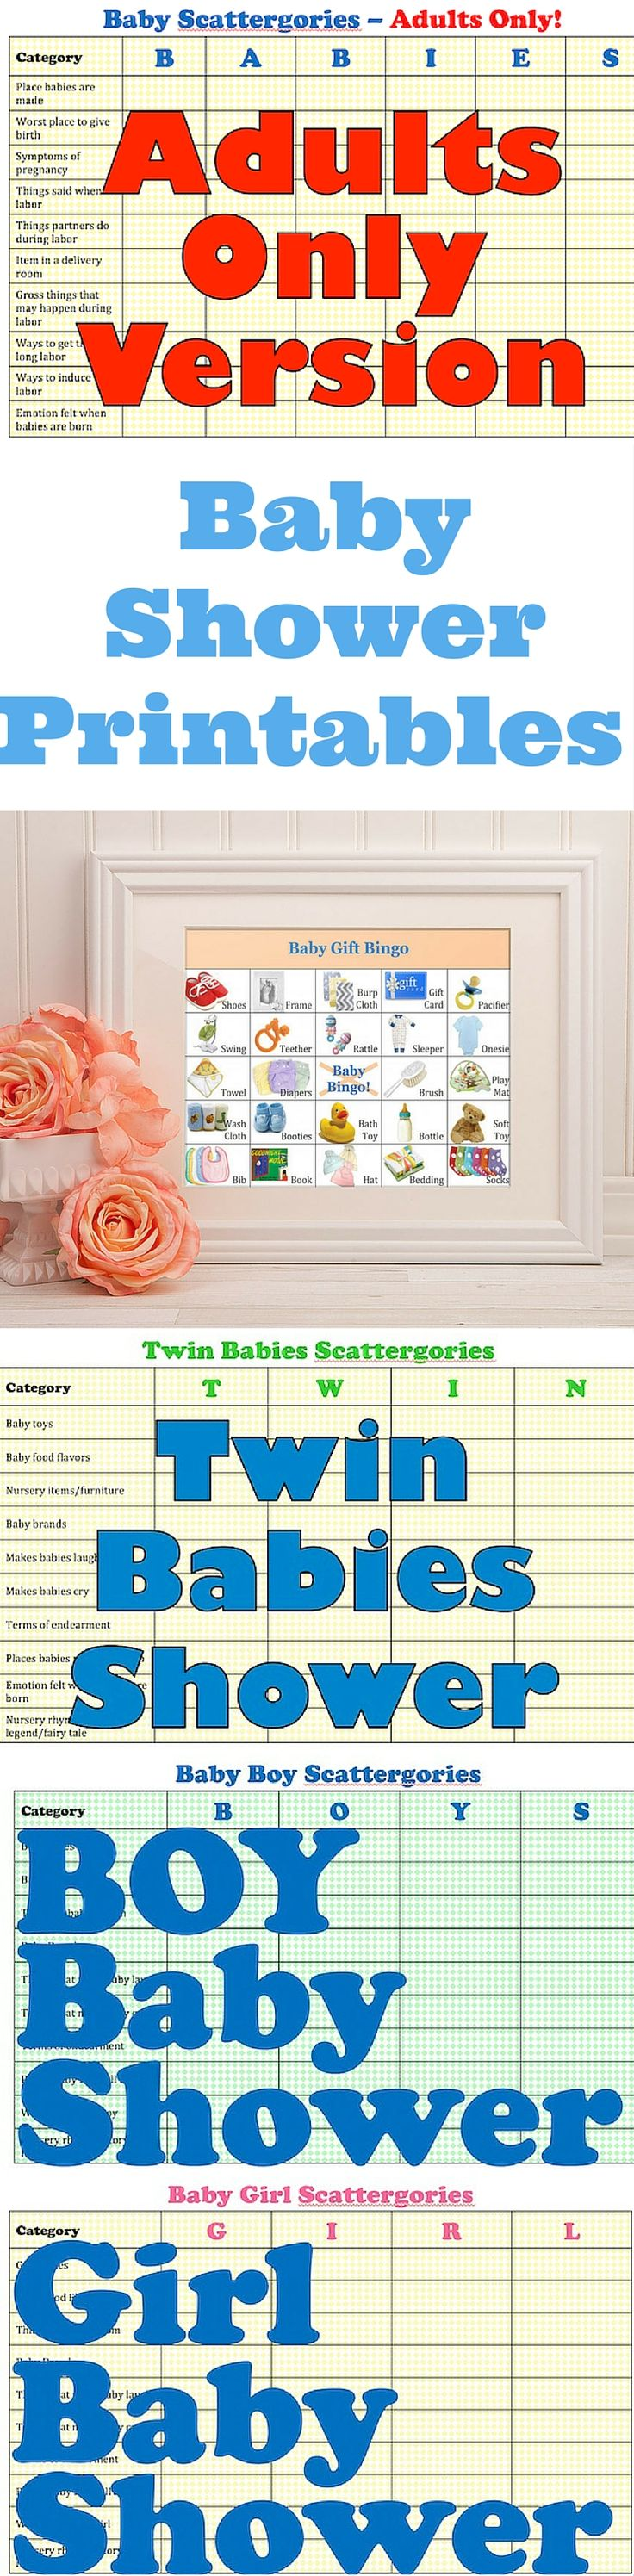 Free Printable Baby Shower Bingo Cards   Up To 80 Different Cards!